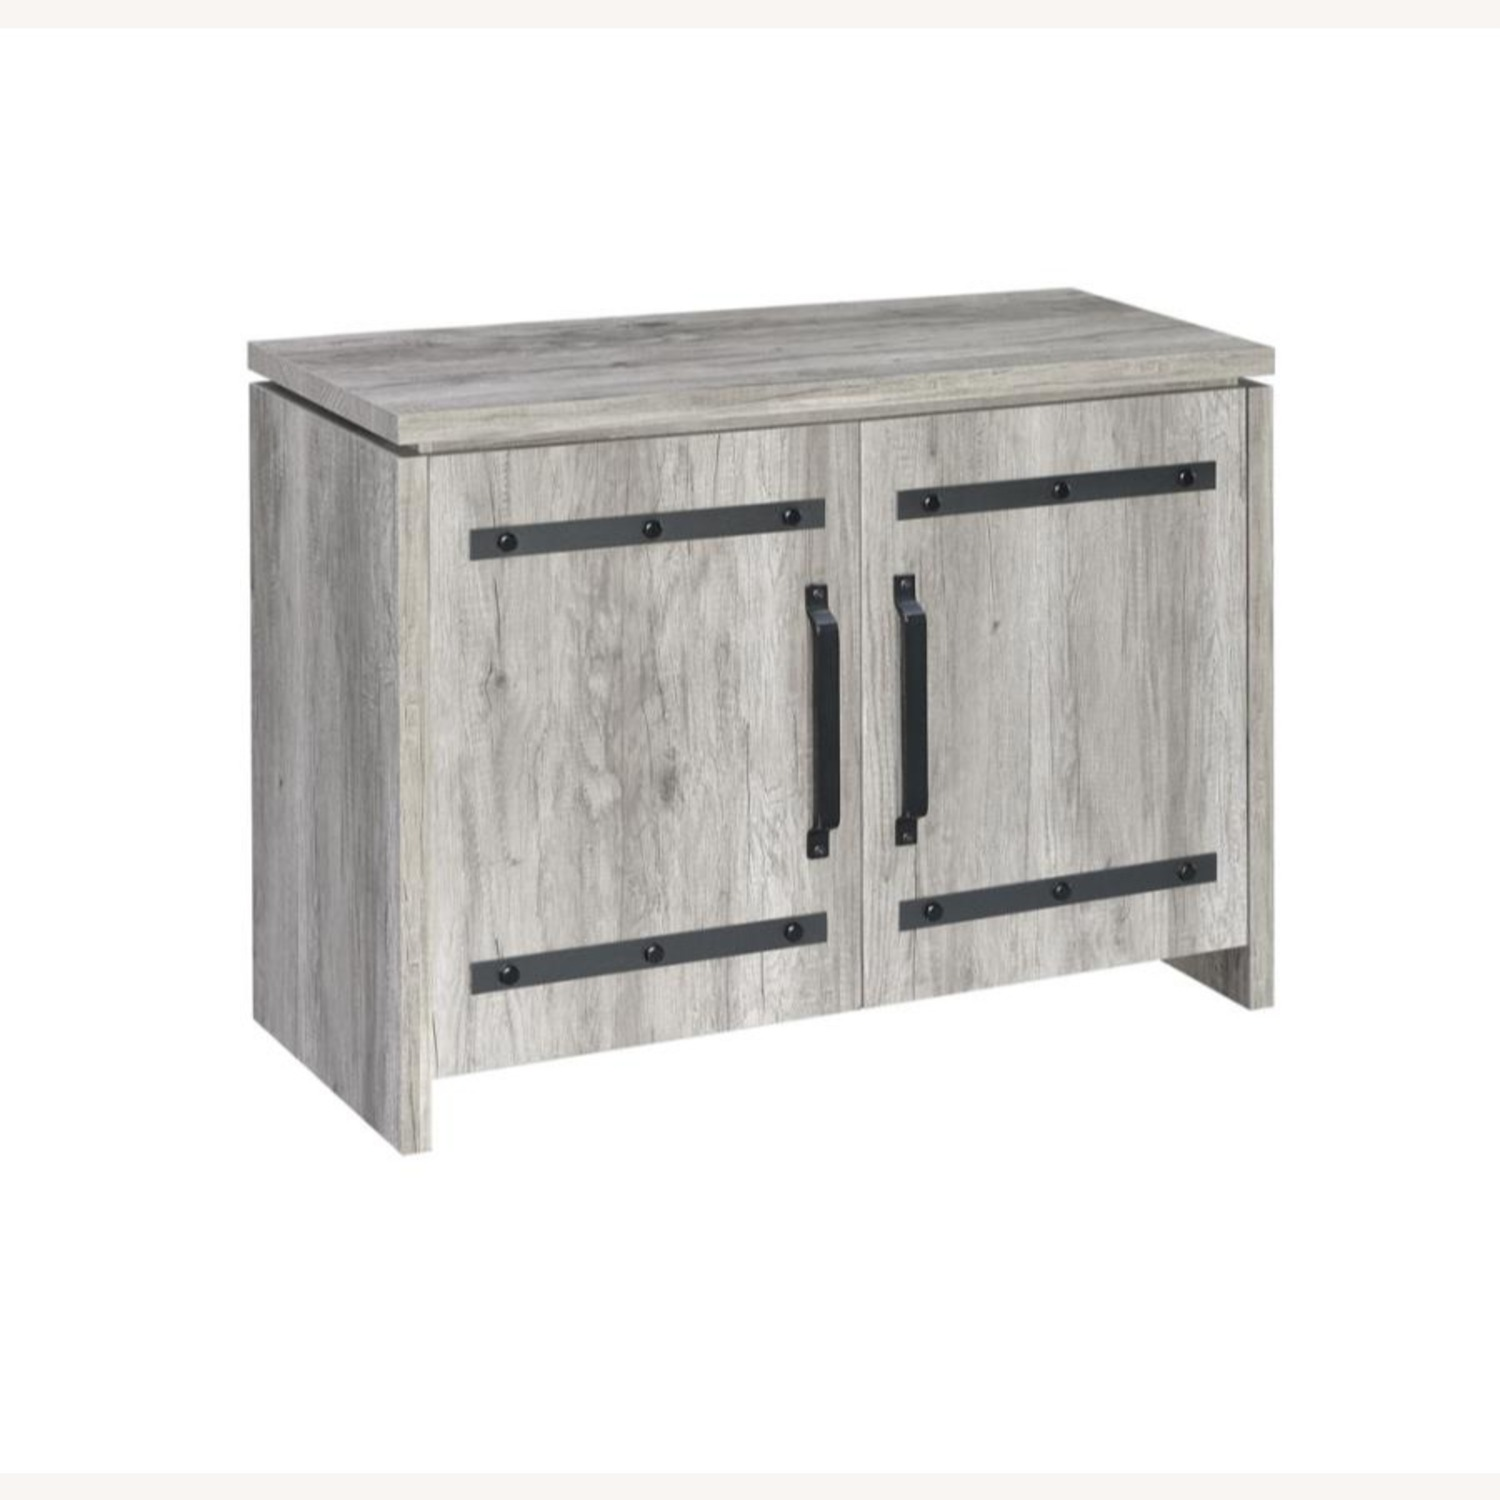 Accent Cabinet In Grey Driftwood Finish - image-0